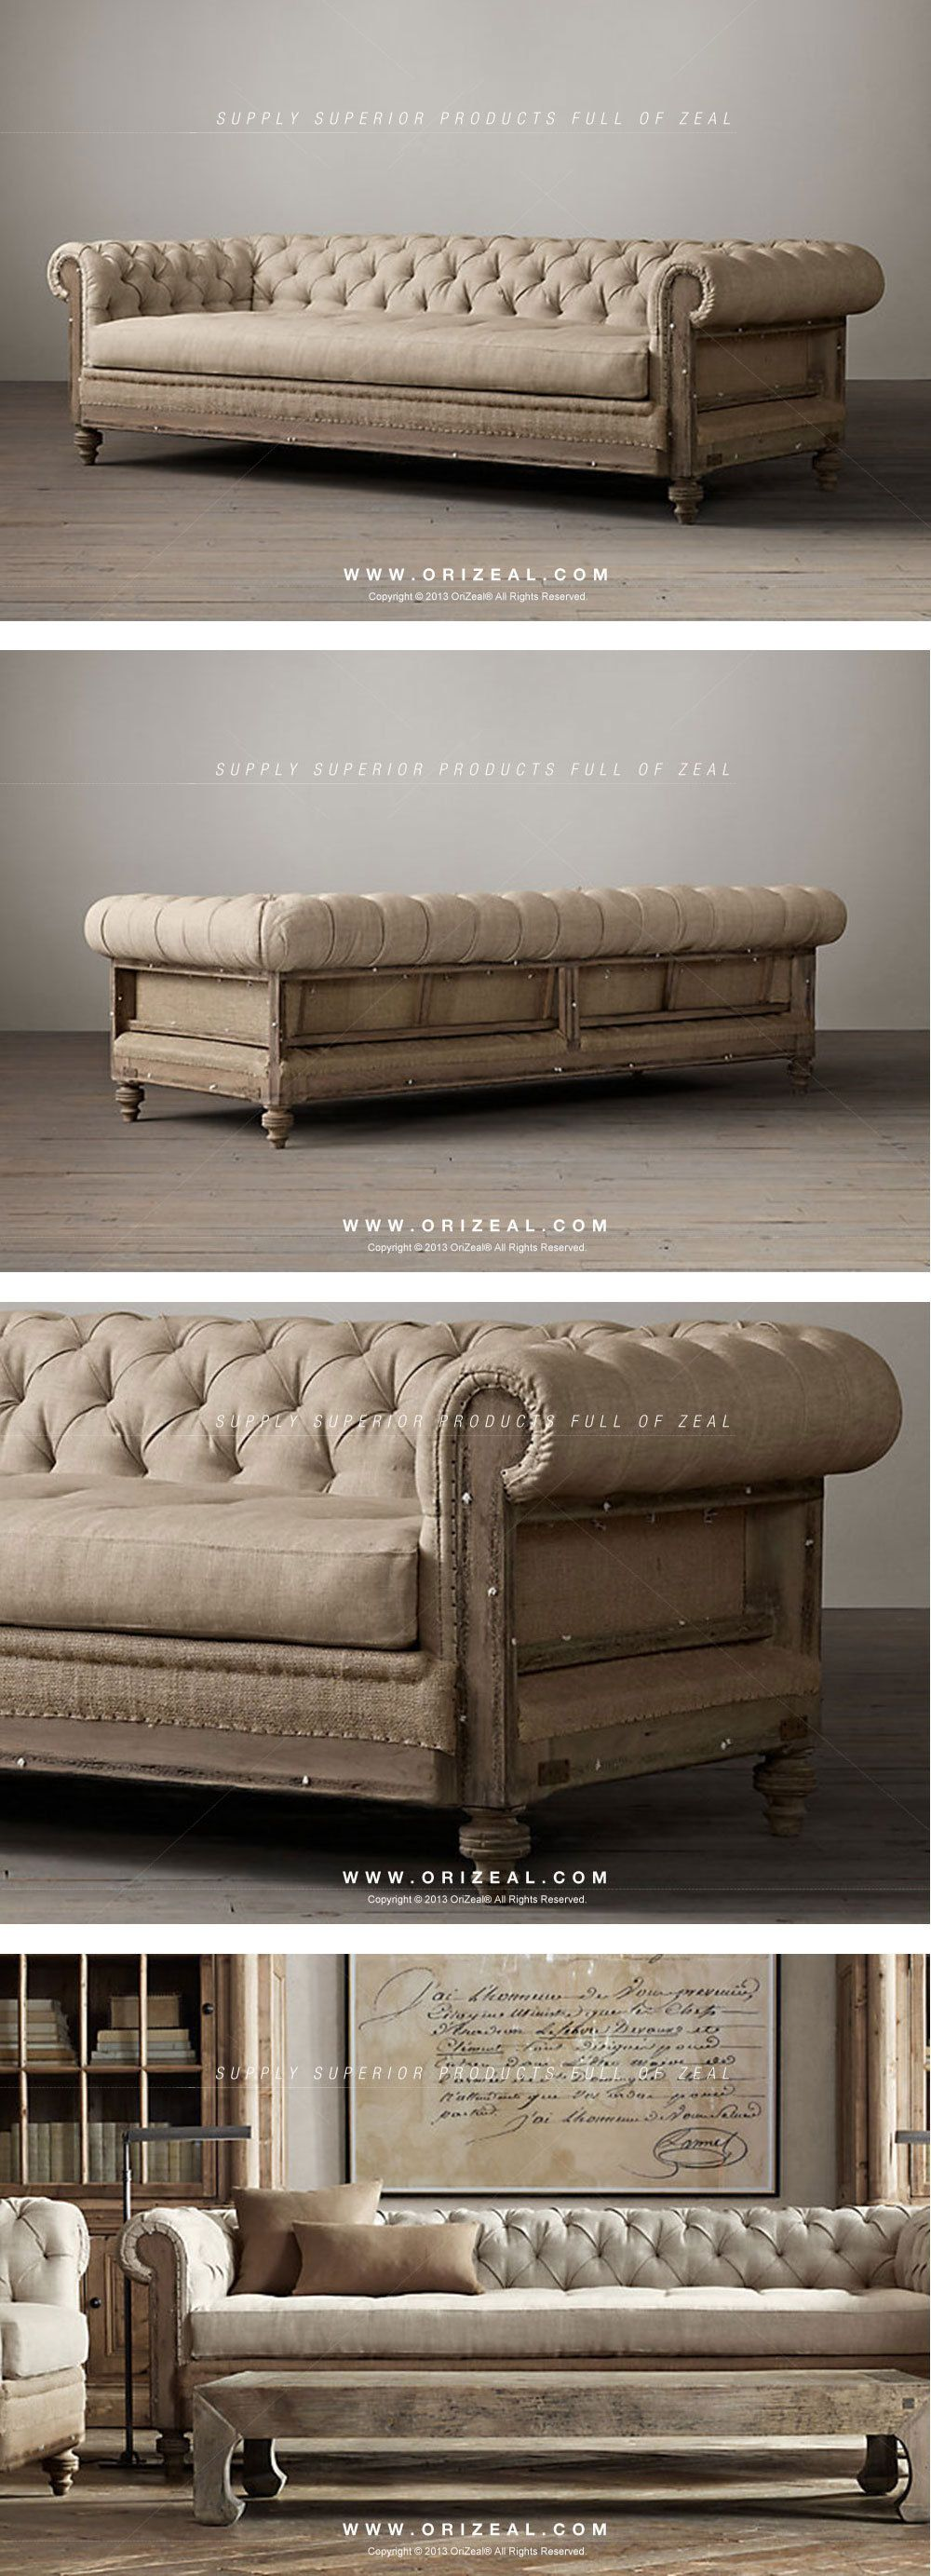 Orizeal Classic French Style Furniture Deconstructed Sofa With Old